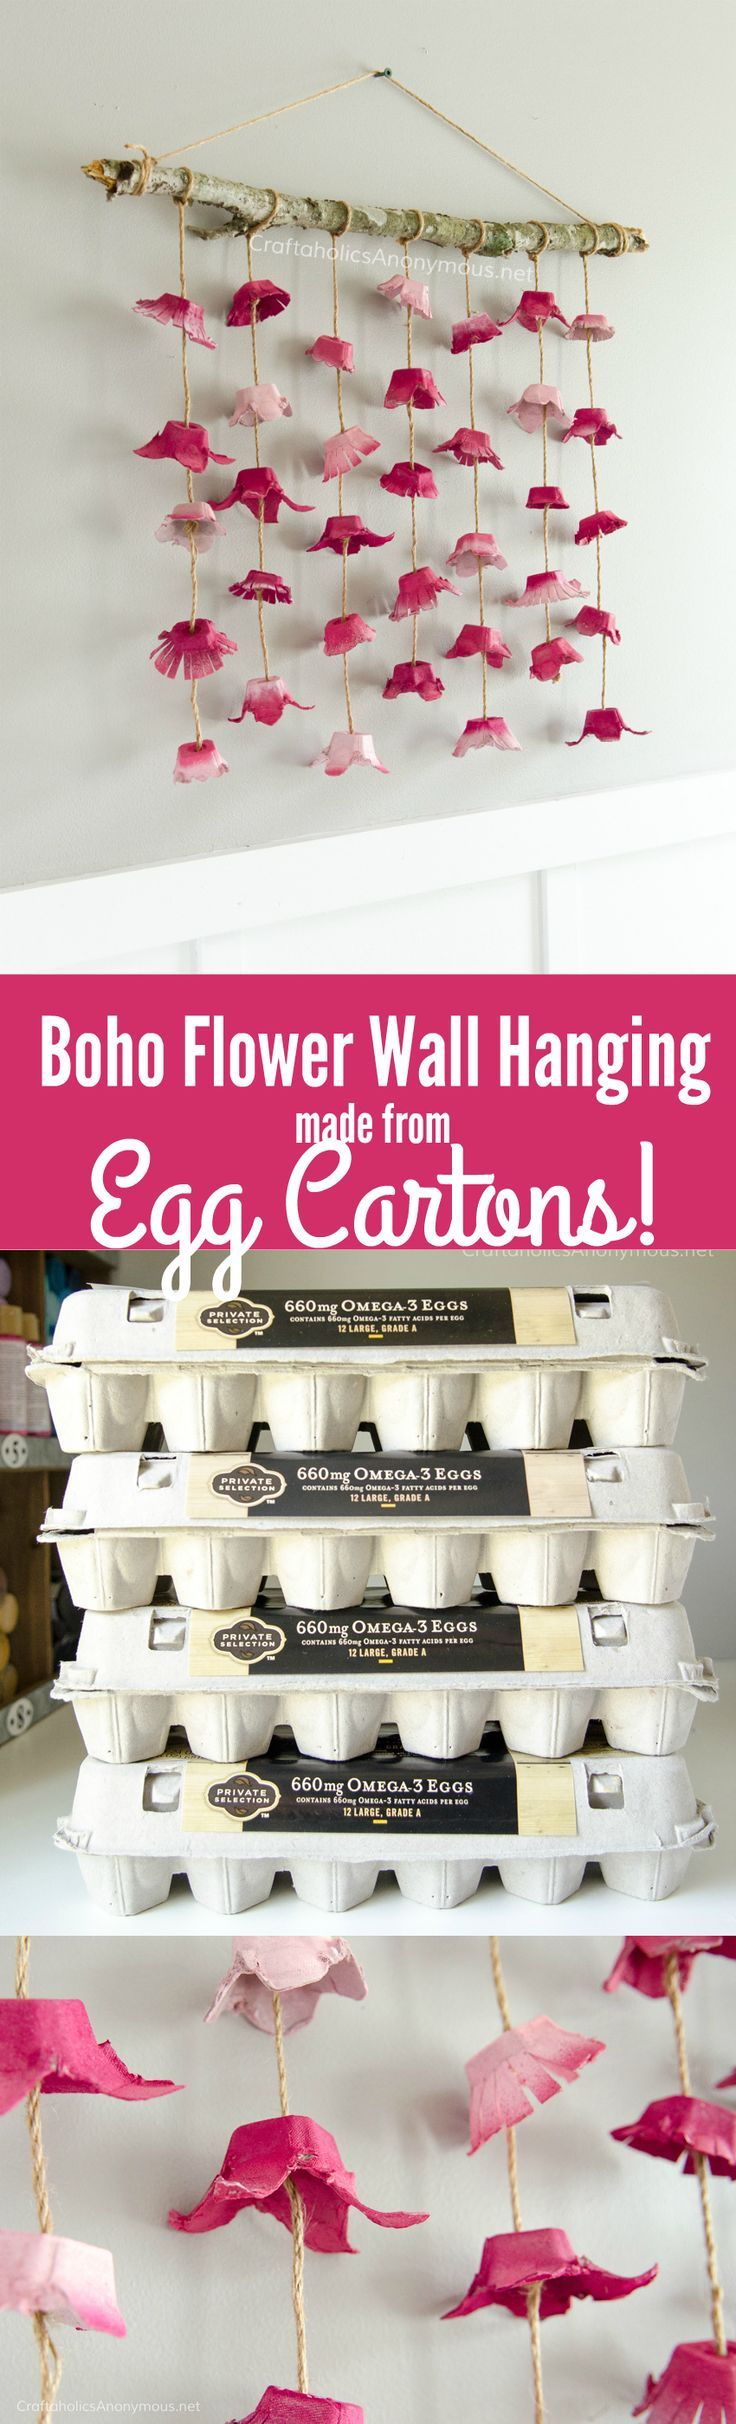 awesome Craftaholics Anonymous® | Boho Flower Wall Hanging made from Egg Cartons by http://www.dana-home-decor.xyz/diy-crafts-home/craftaholics-anonymous-boho-flower-wall-hanging-made-from-egg-cartons/                                                                                                                                                                                 More